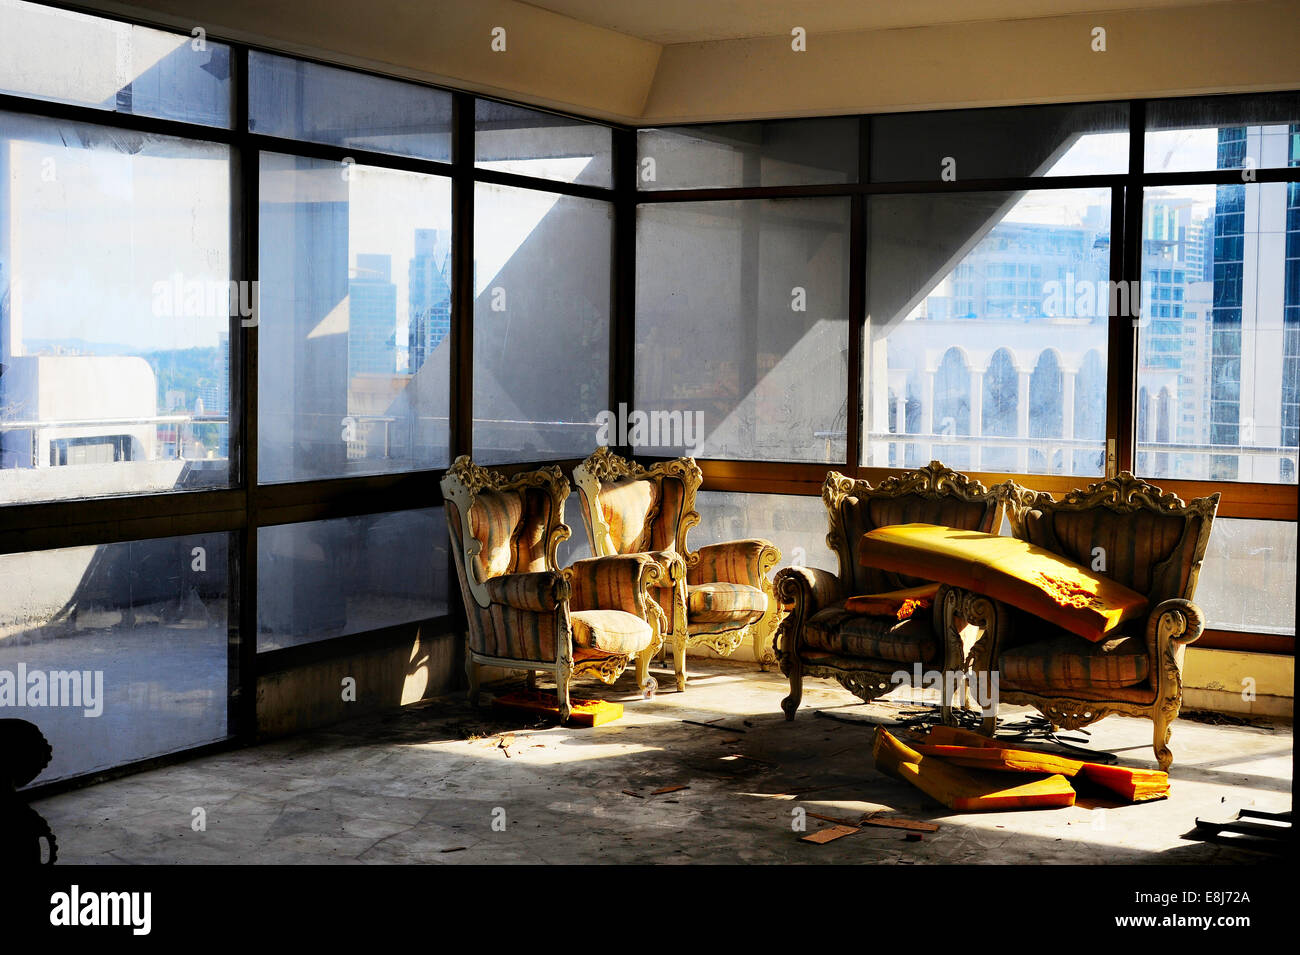 Abandoned house interior wit couch and chairs. Malaysia - Stock Image